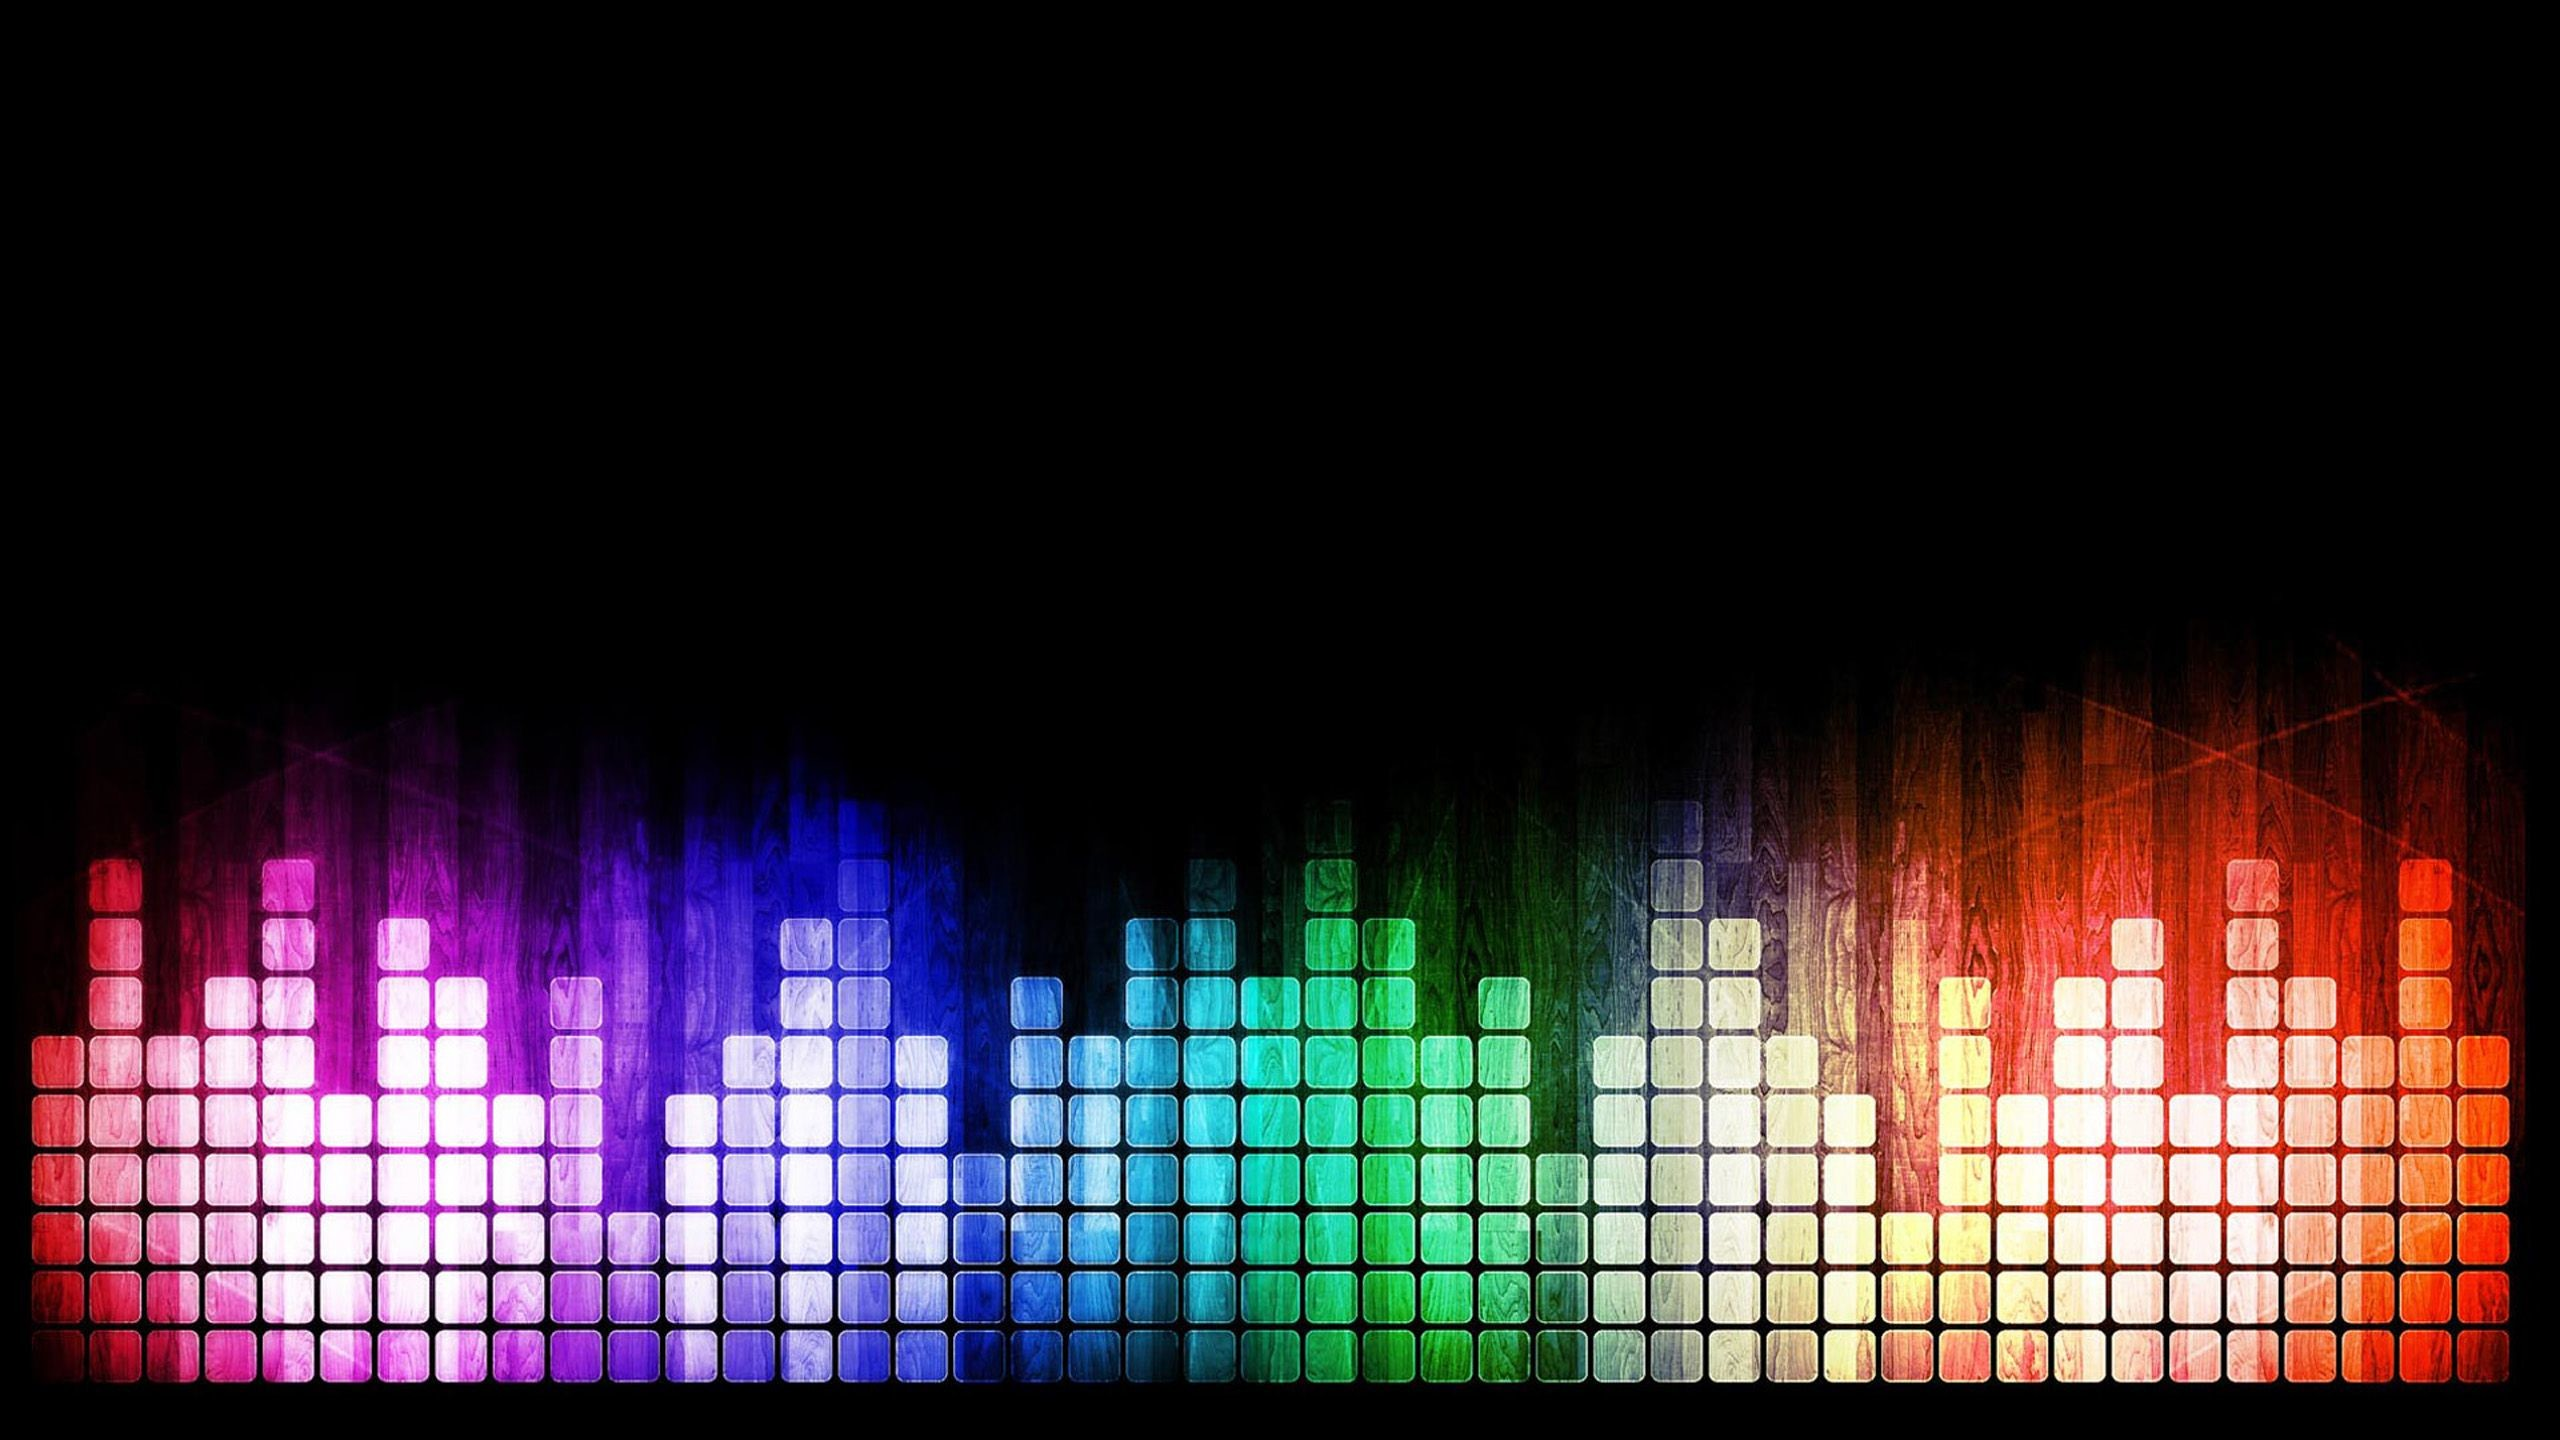 Res: 2560x1440, Pioneer Dj Wallpapers High Quality Gif Deck Tiesto Set Wallpapers